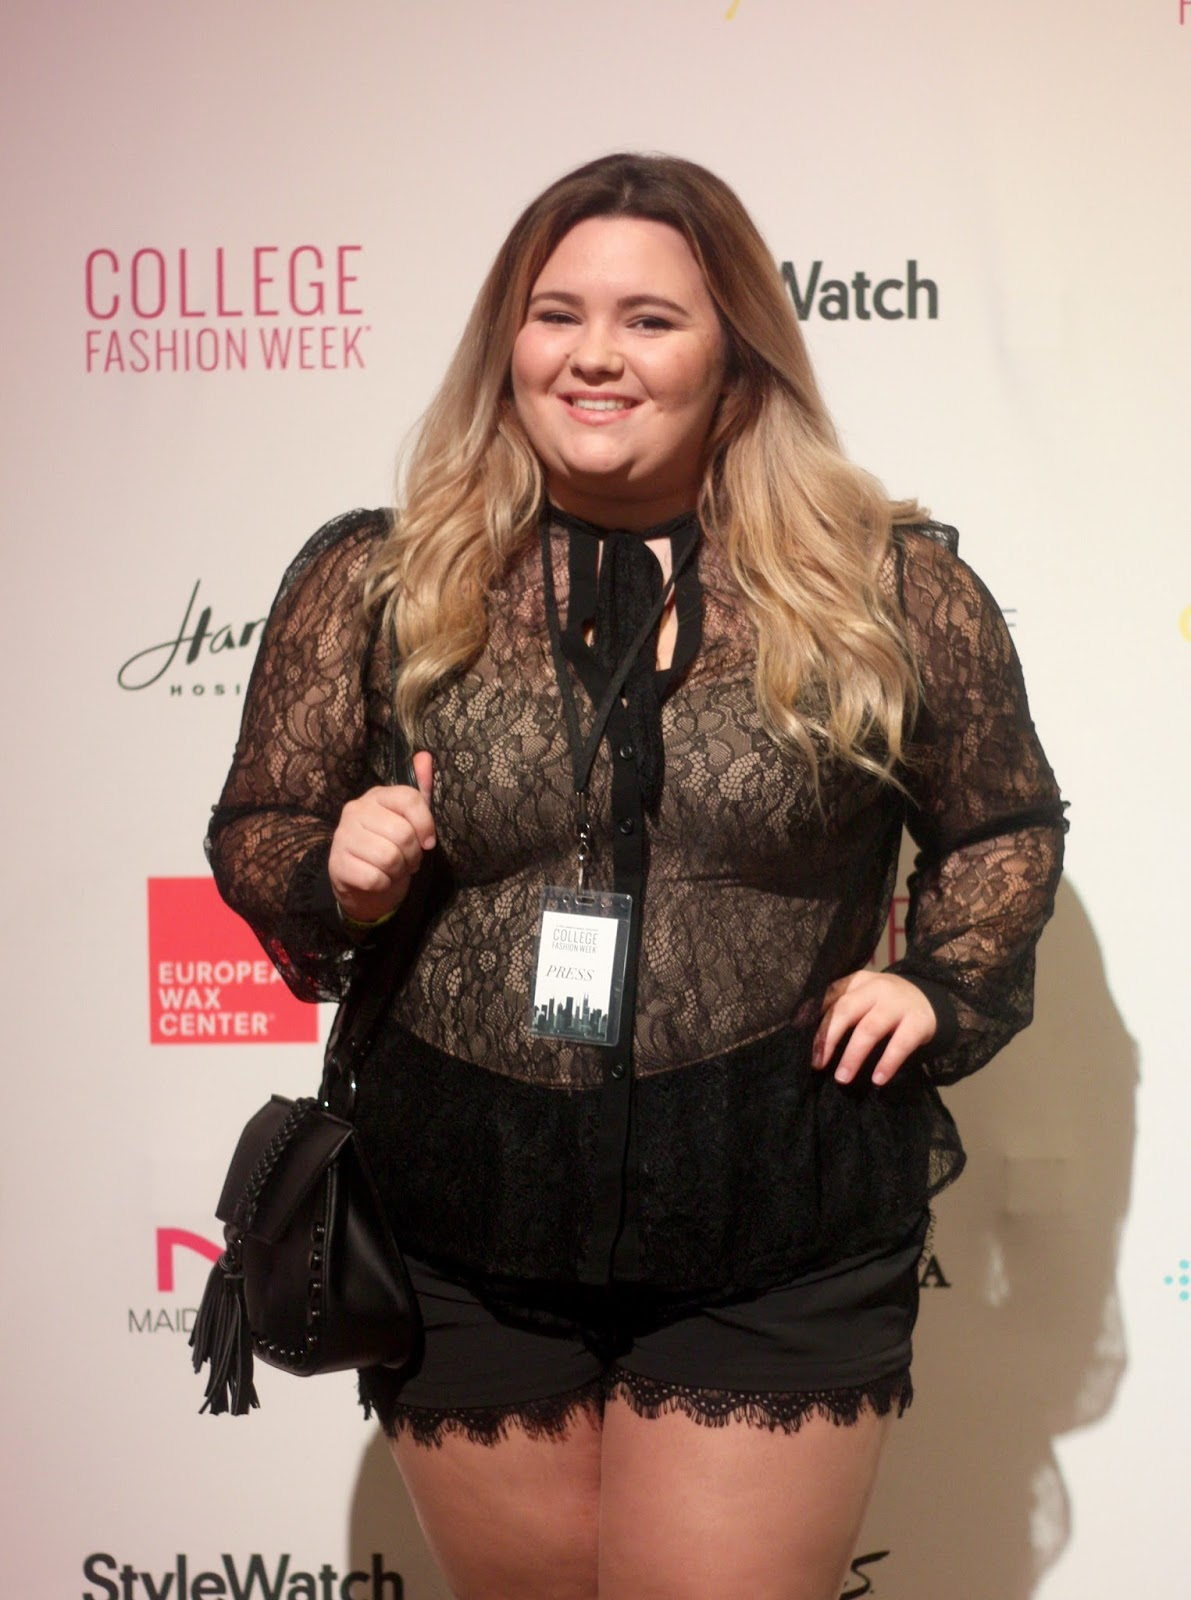 natalie craig, chicago blogger, midwest blogger, plus size fashion, ps blogger, her campus, college fashion week, chicago fashion week, fitbit flex 2, rebecca minkoff, the dry bar, perfumania